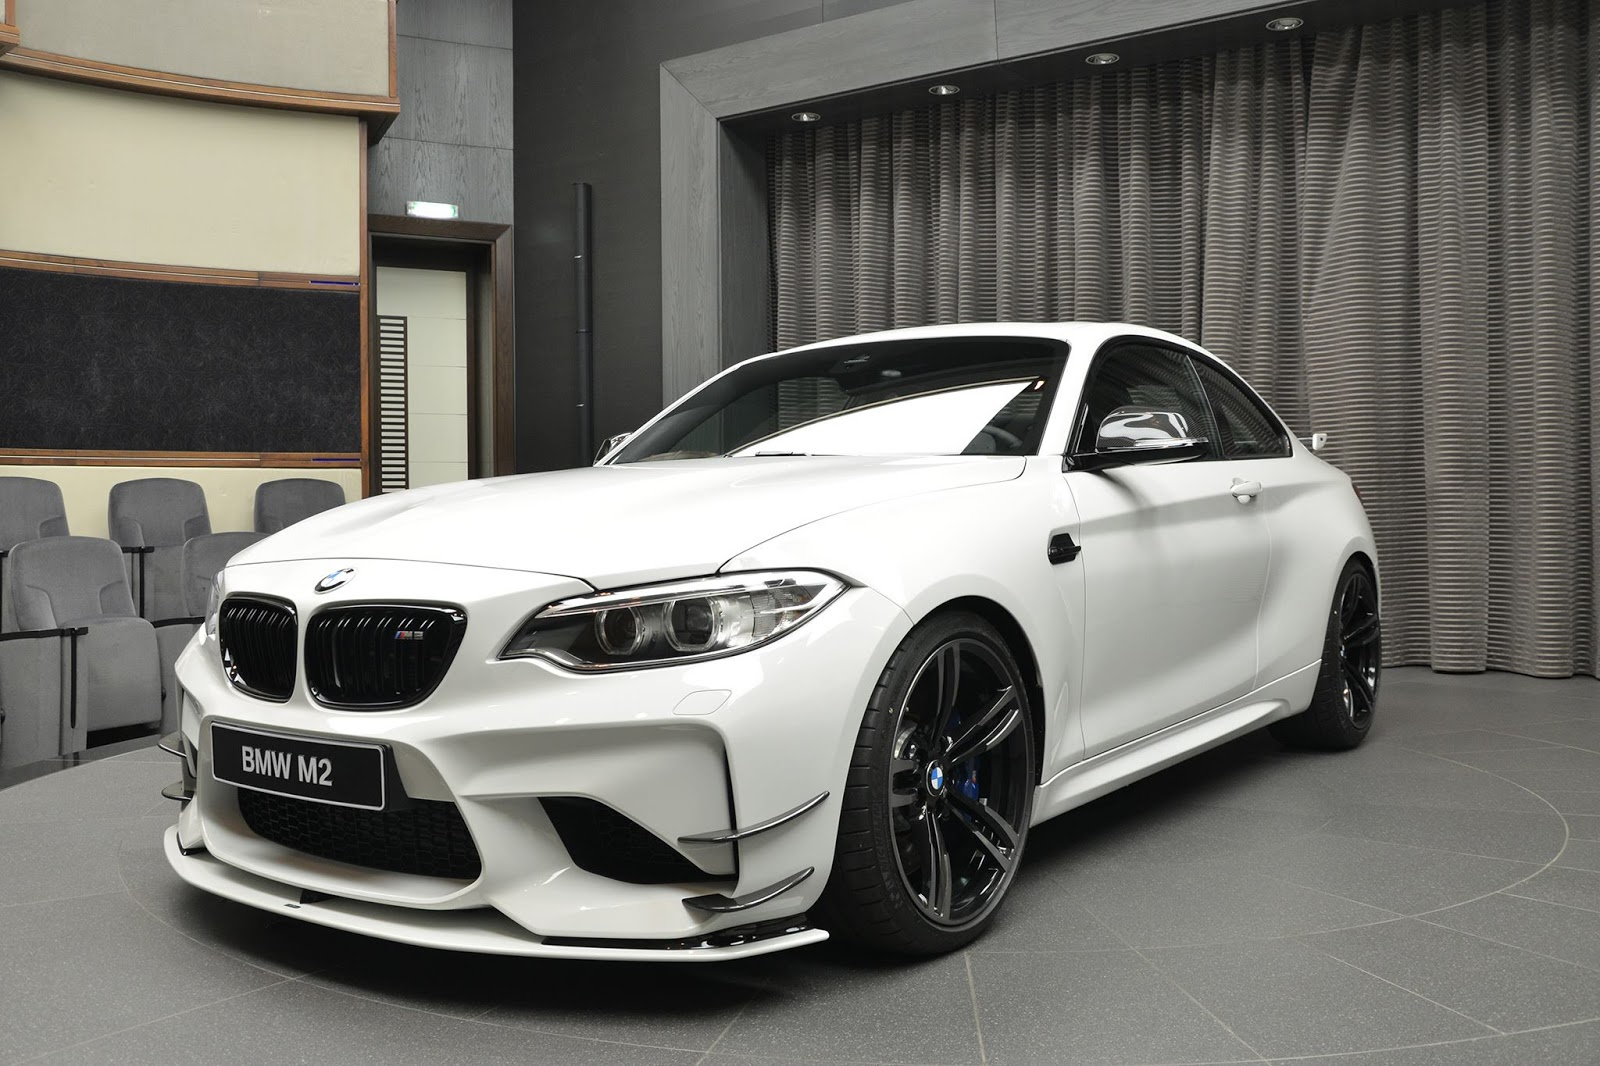 ac schnitzer kit makes bmw m2 look properly angry. Black Bedroom Furniture Sets. Home Design Ideas